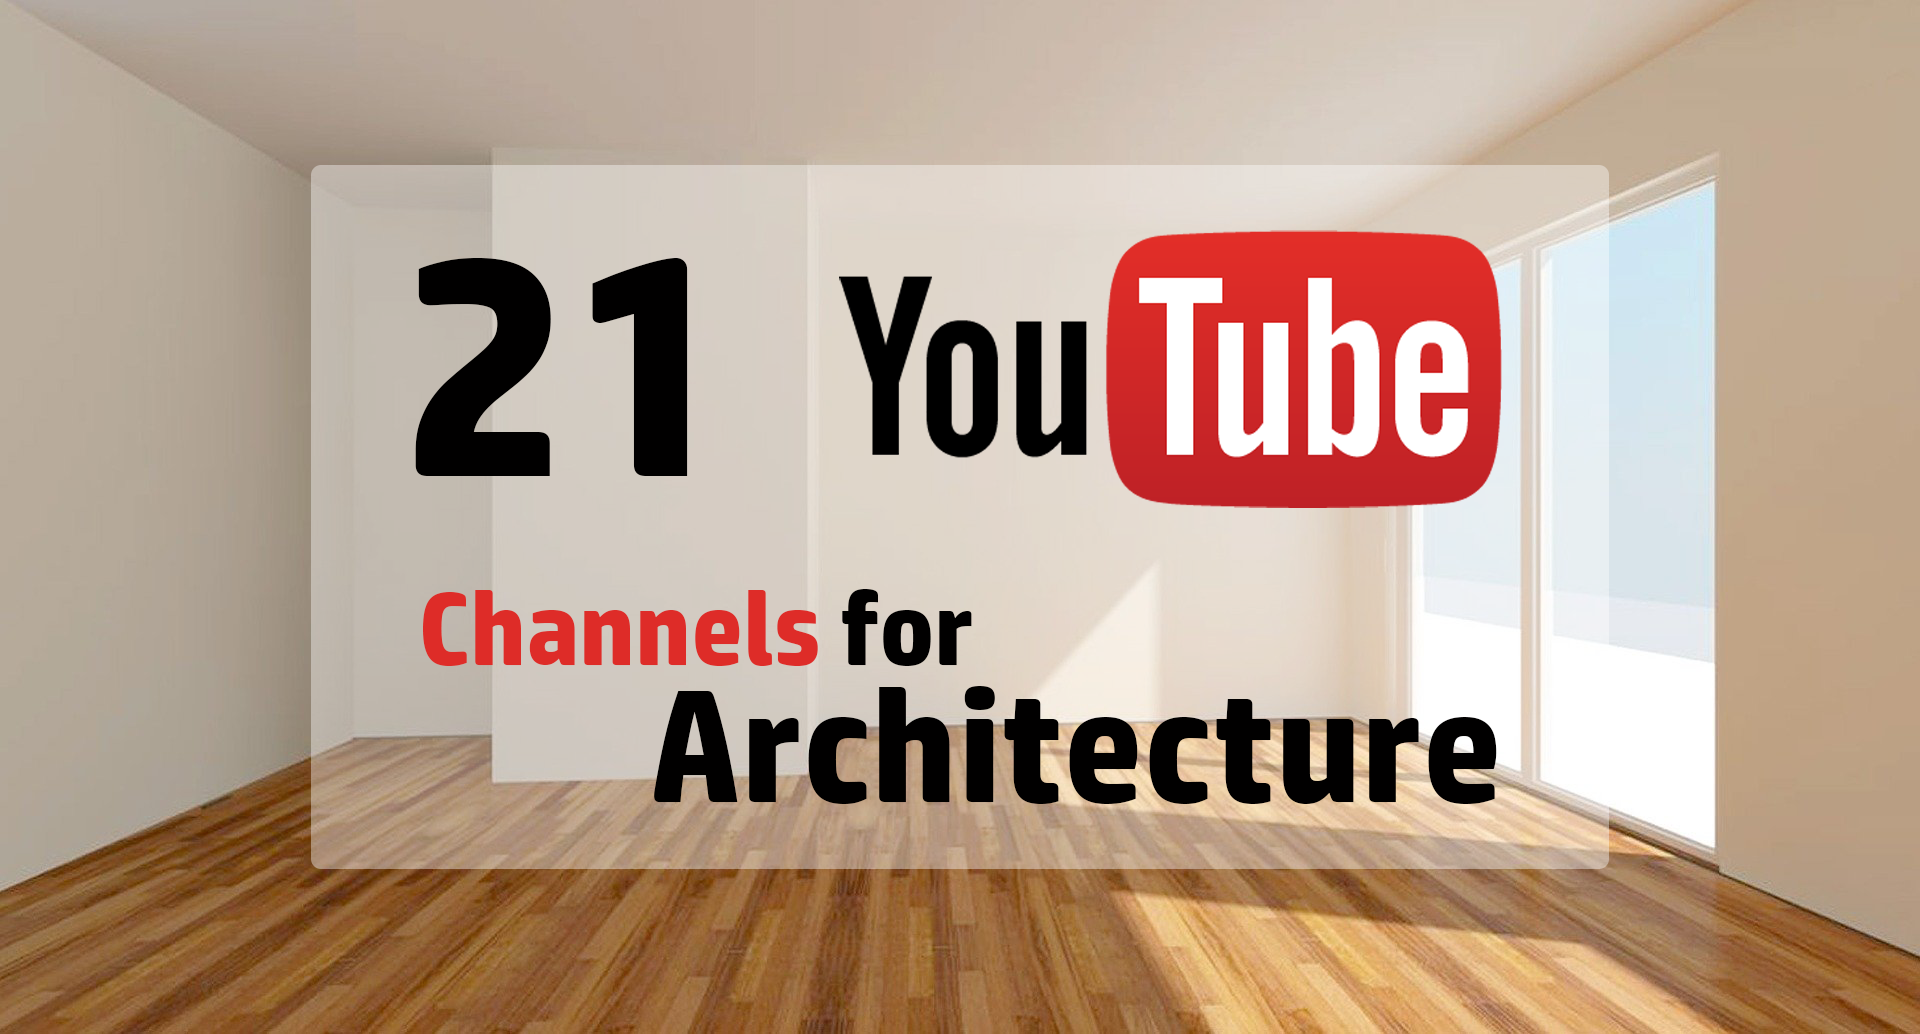 21 YouTube Channels for Architectural